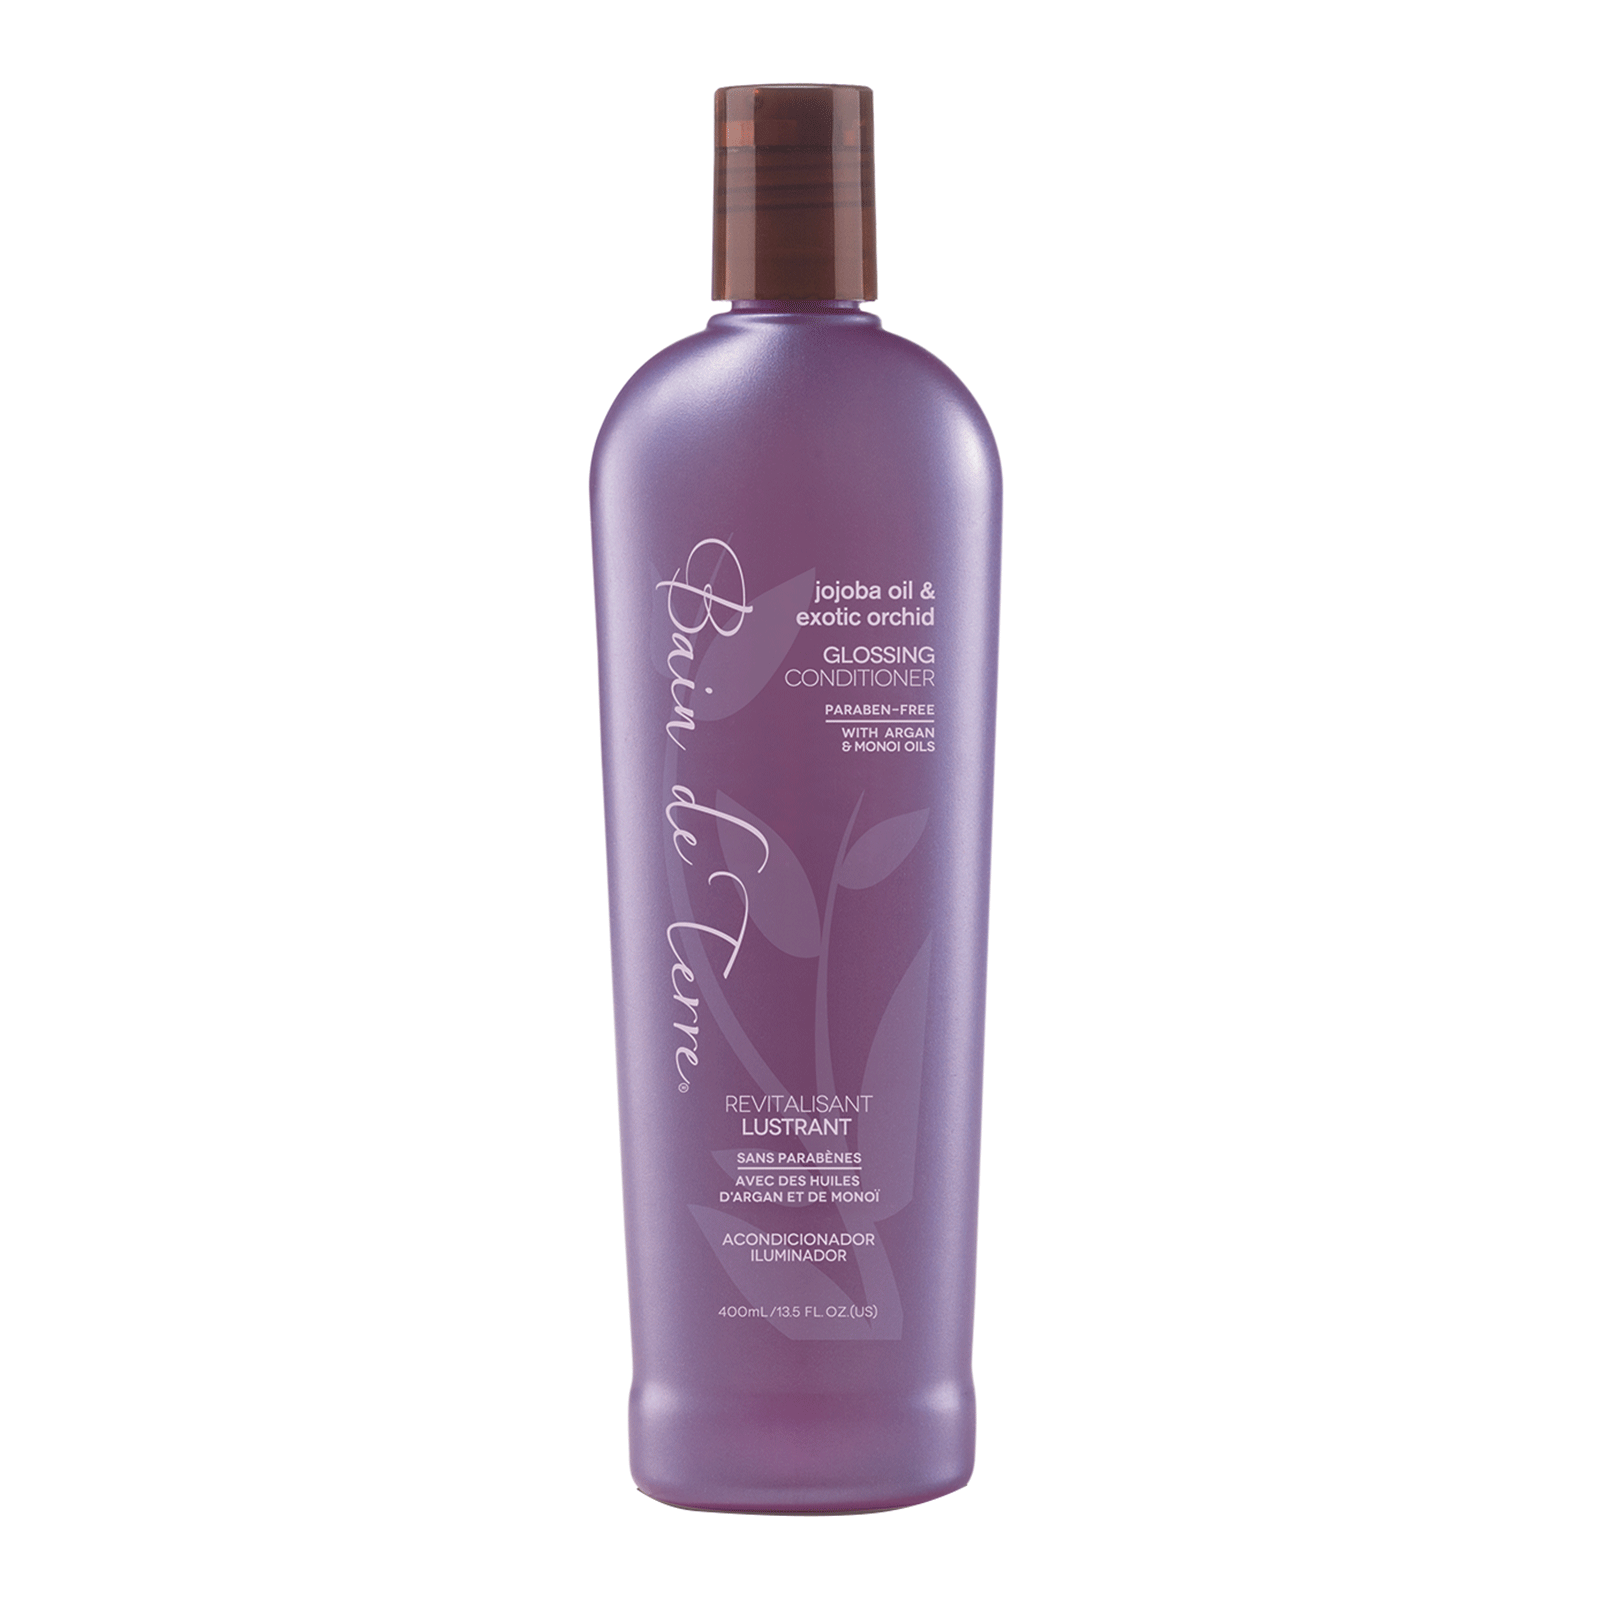 Jojoba Oil and Exotic Orchid Glossing Conditioner